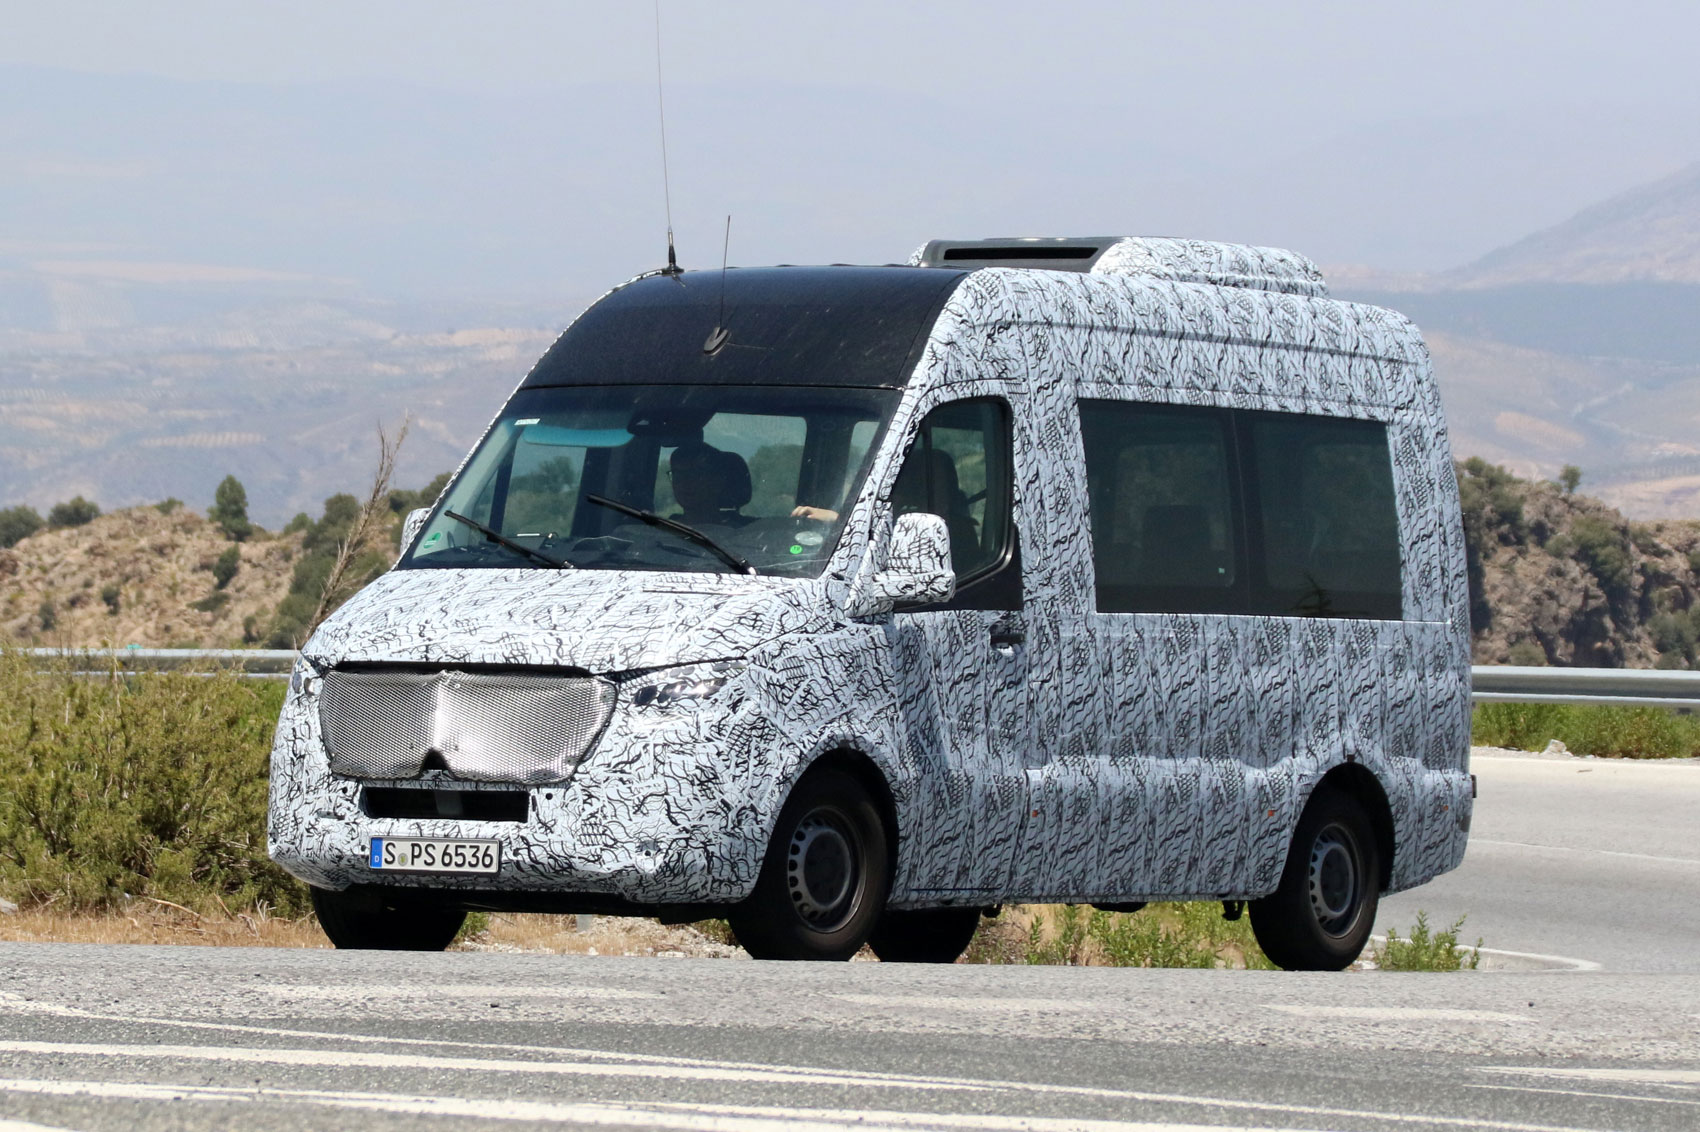 The minibuses based on the mercedes benz sprinter 2018 also gets to - The New Sprinter Isn T Set To Be Officially Unveiled In 2018 But Quite A Bit Of Information About The Latest Mercedes Large Van Is Already Leaking Out